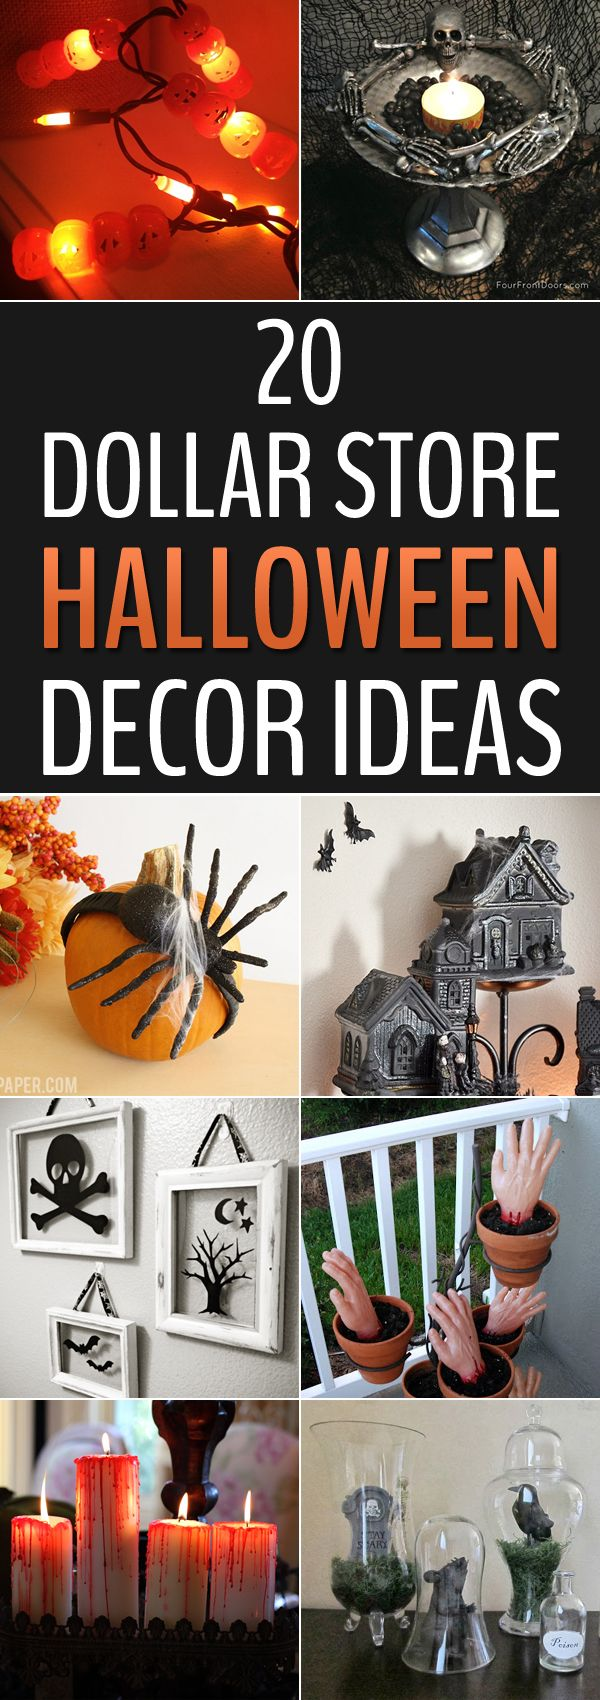 20 Dollar Store Halloween Decor Ideas →